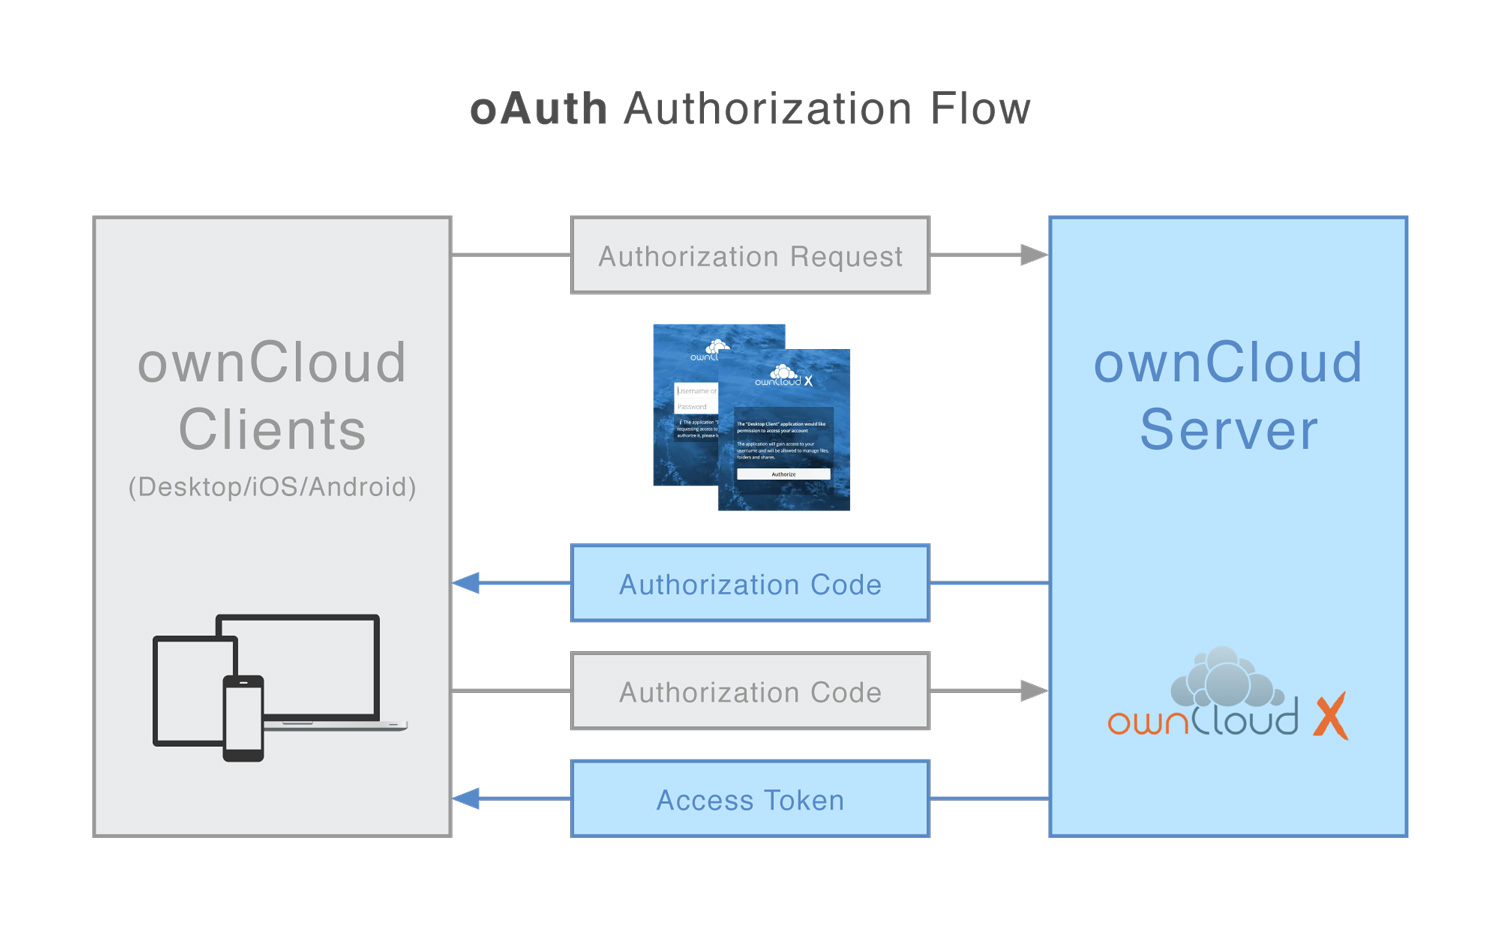 ownCloud Delivers Secure Authentication and Authorization